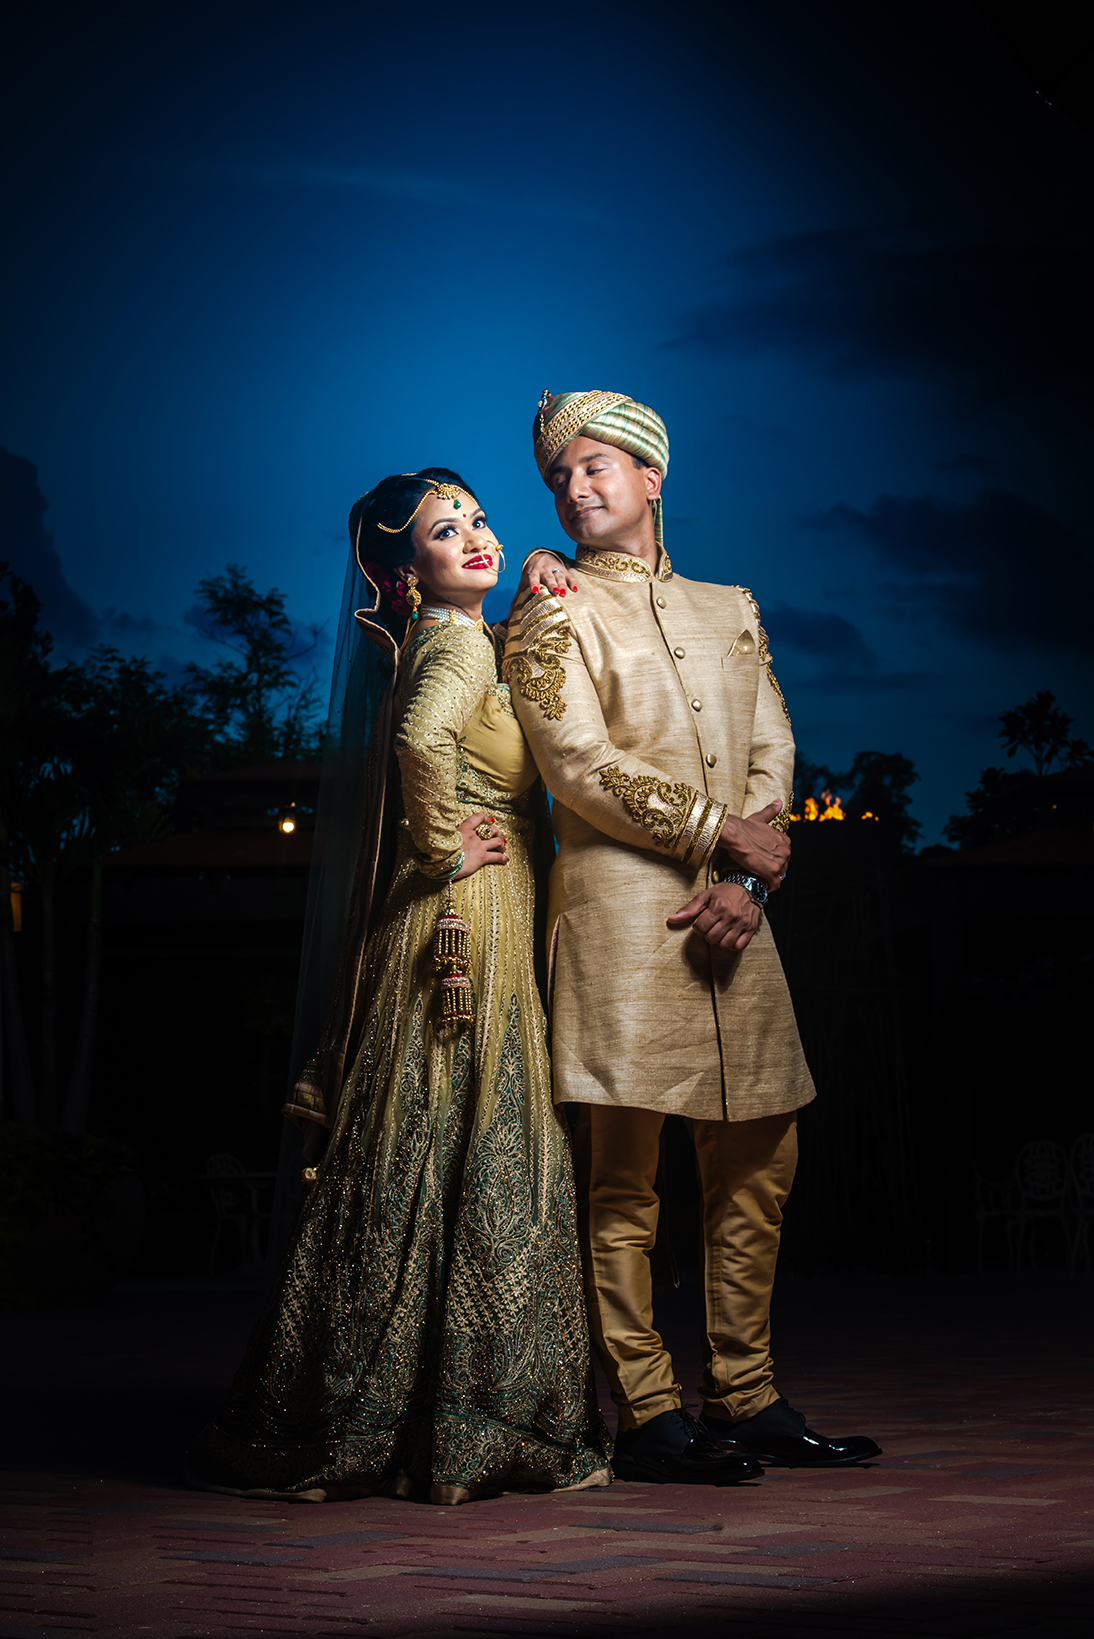 south_asian_wedding_photography_dhoom_studio_new_york91 SOUTH ASIAN WEDDINGS